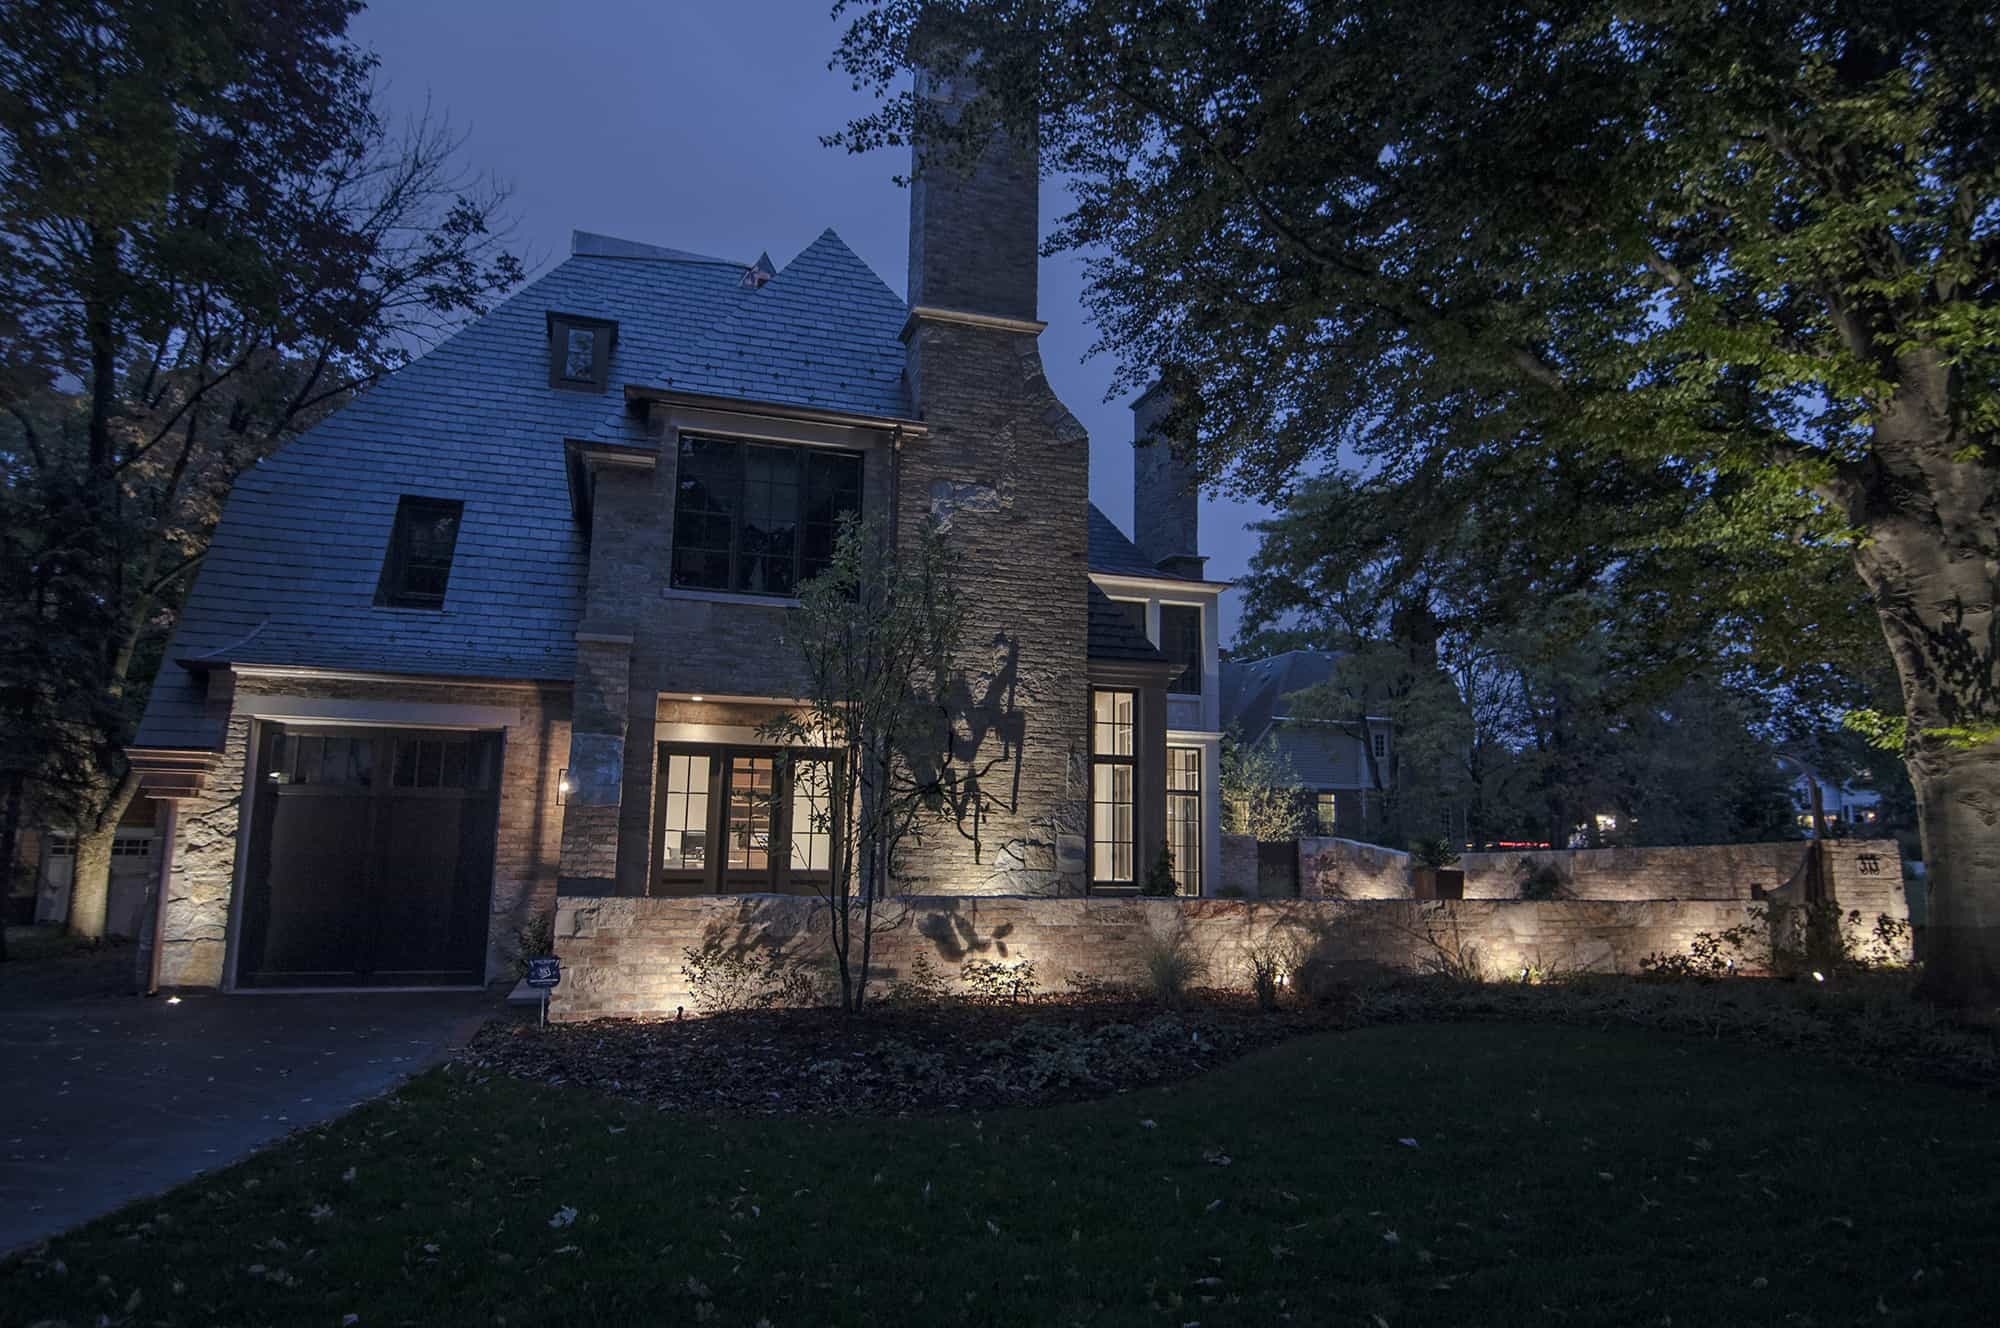 Hinsdale Accent Lighting & Accent Lighting - Outdoor Lighting in Chicago IL | Outdoor Accents